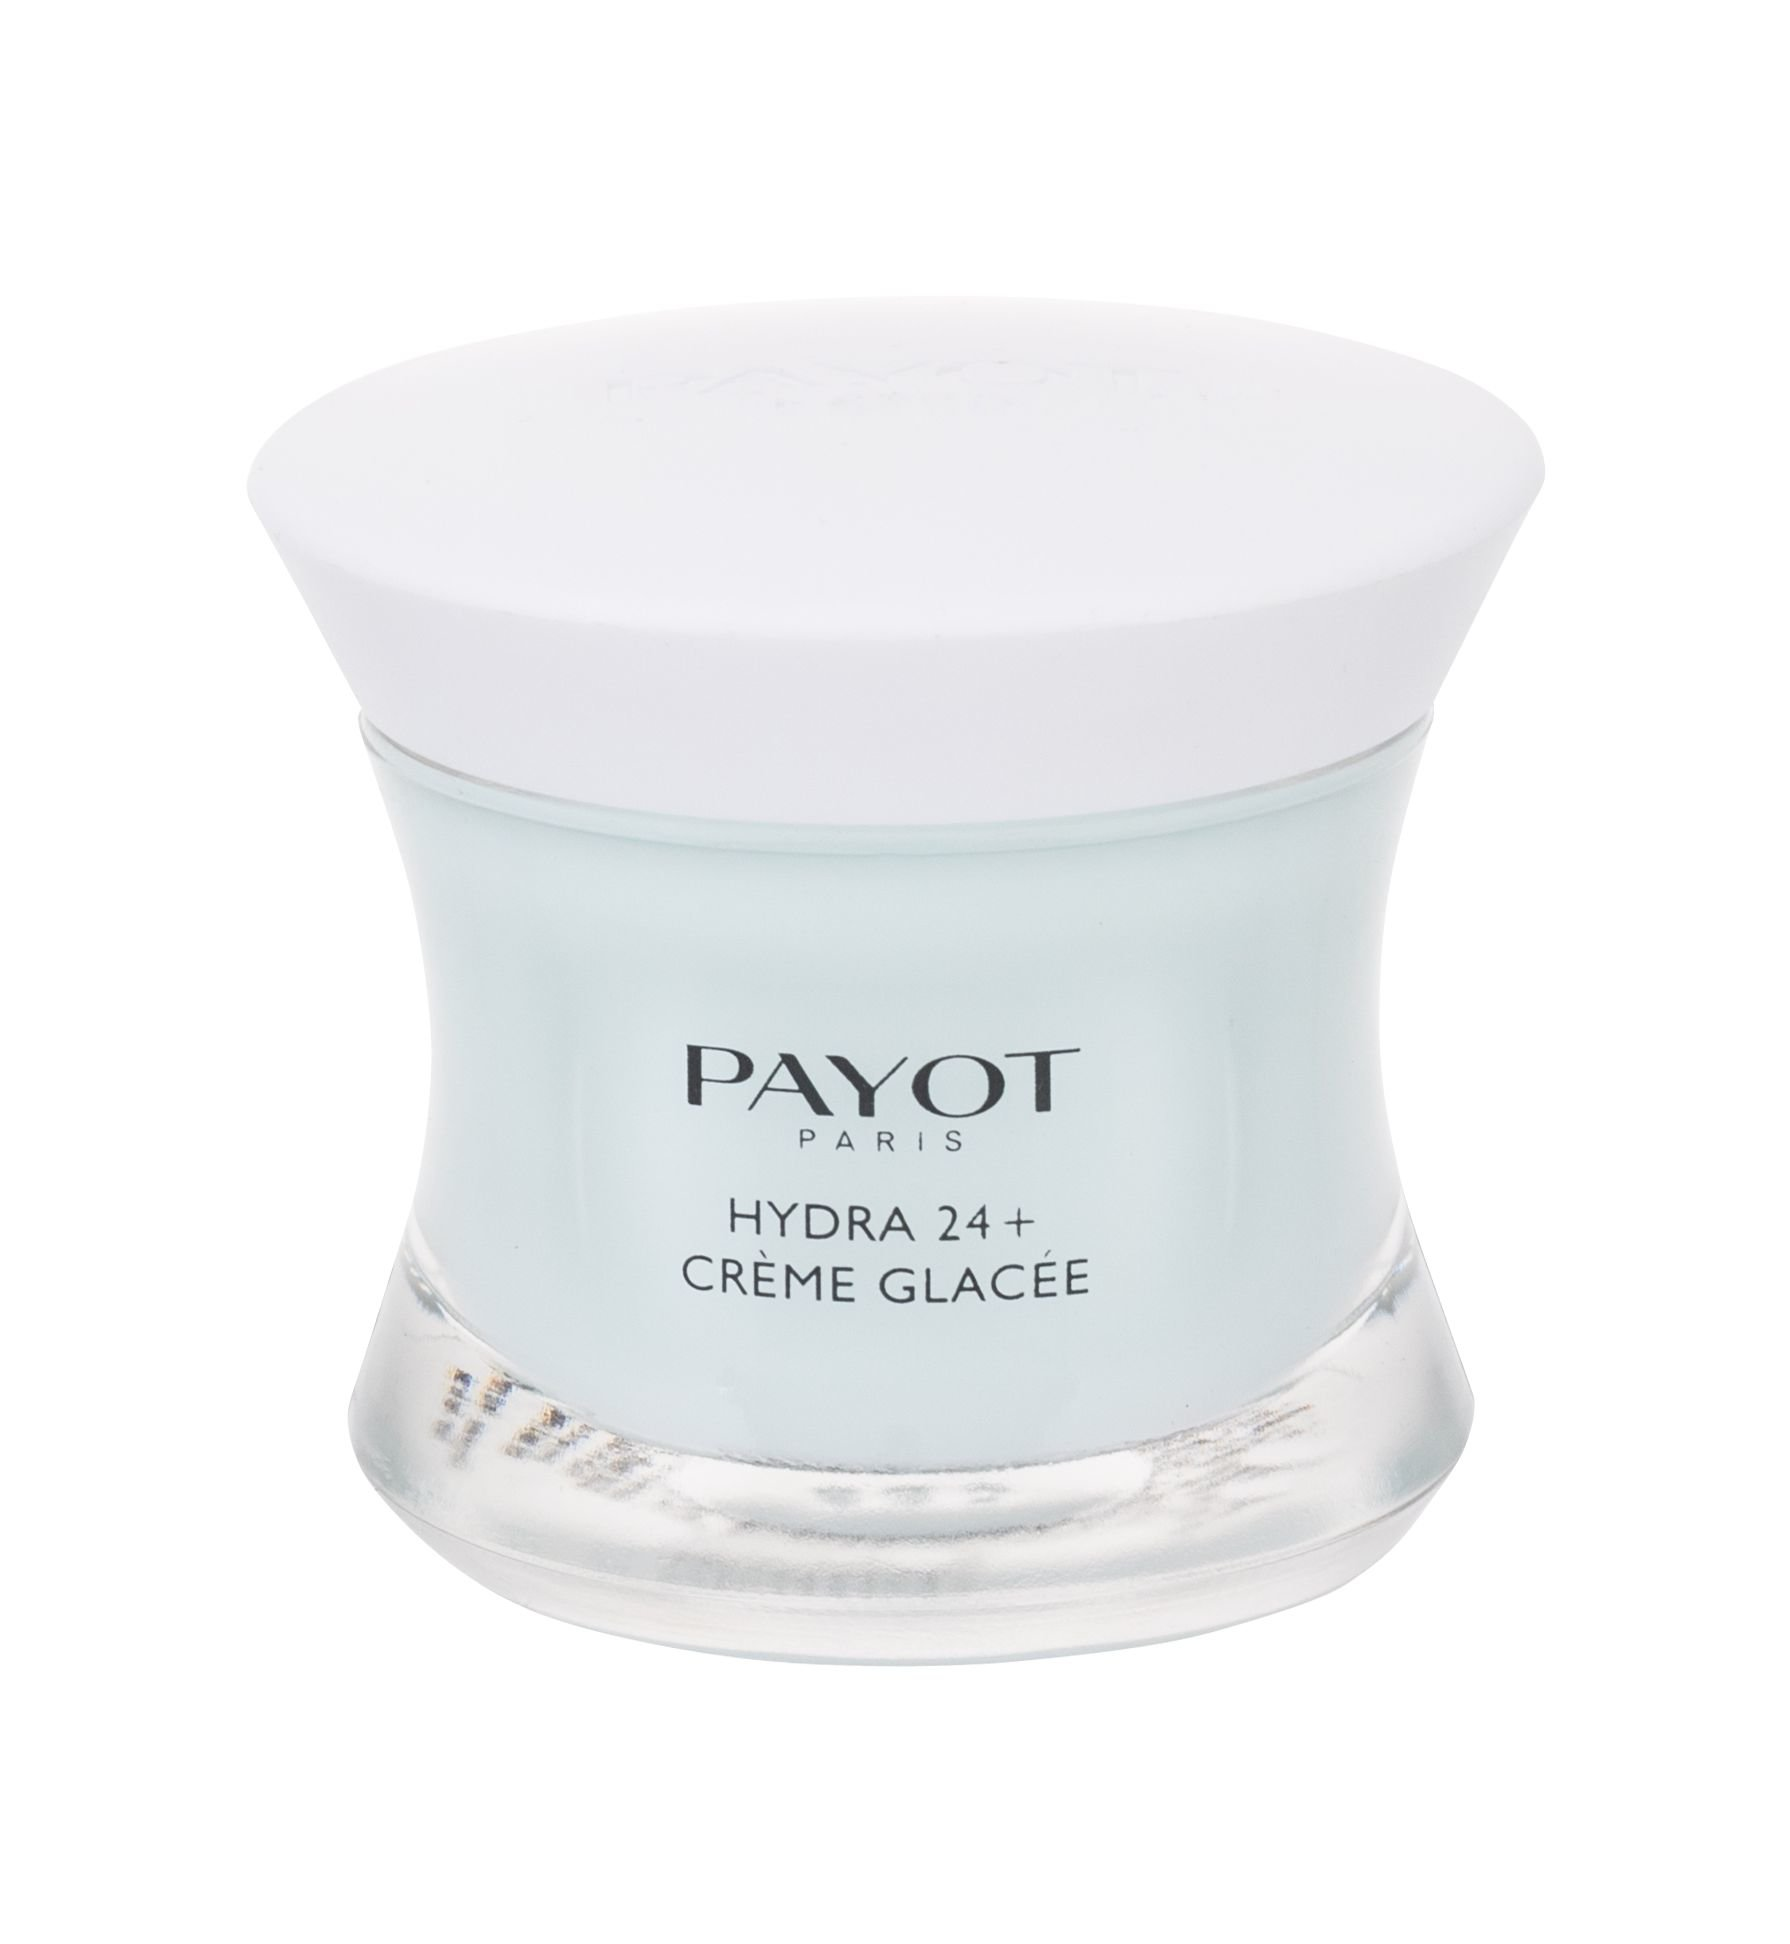 PAYOT Hydra 24+ Cosmetic 50ml  Creme Glacee